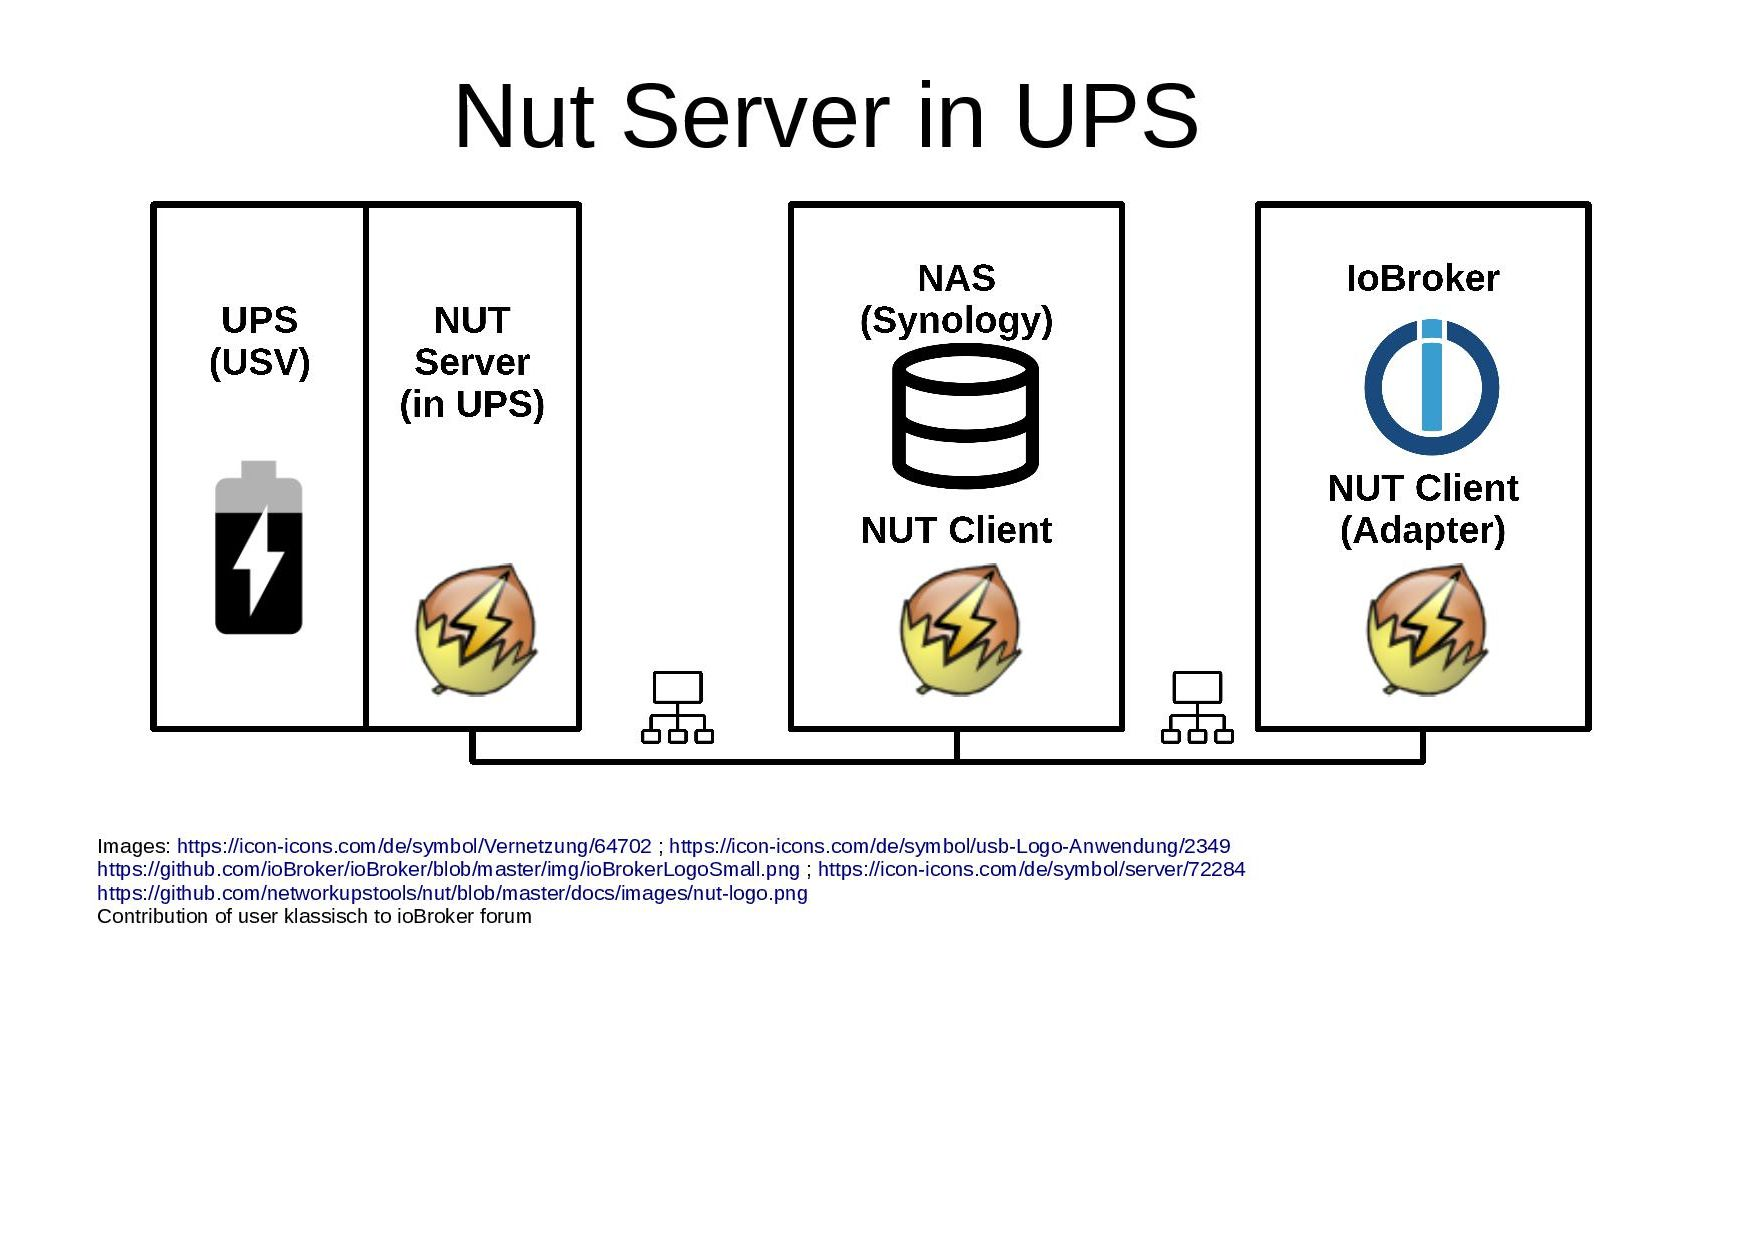 Nut-integratef-in-UPS.jpg